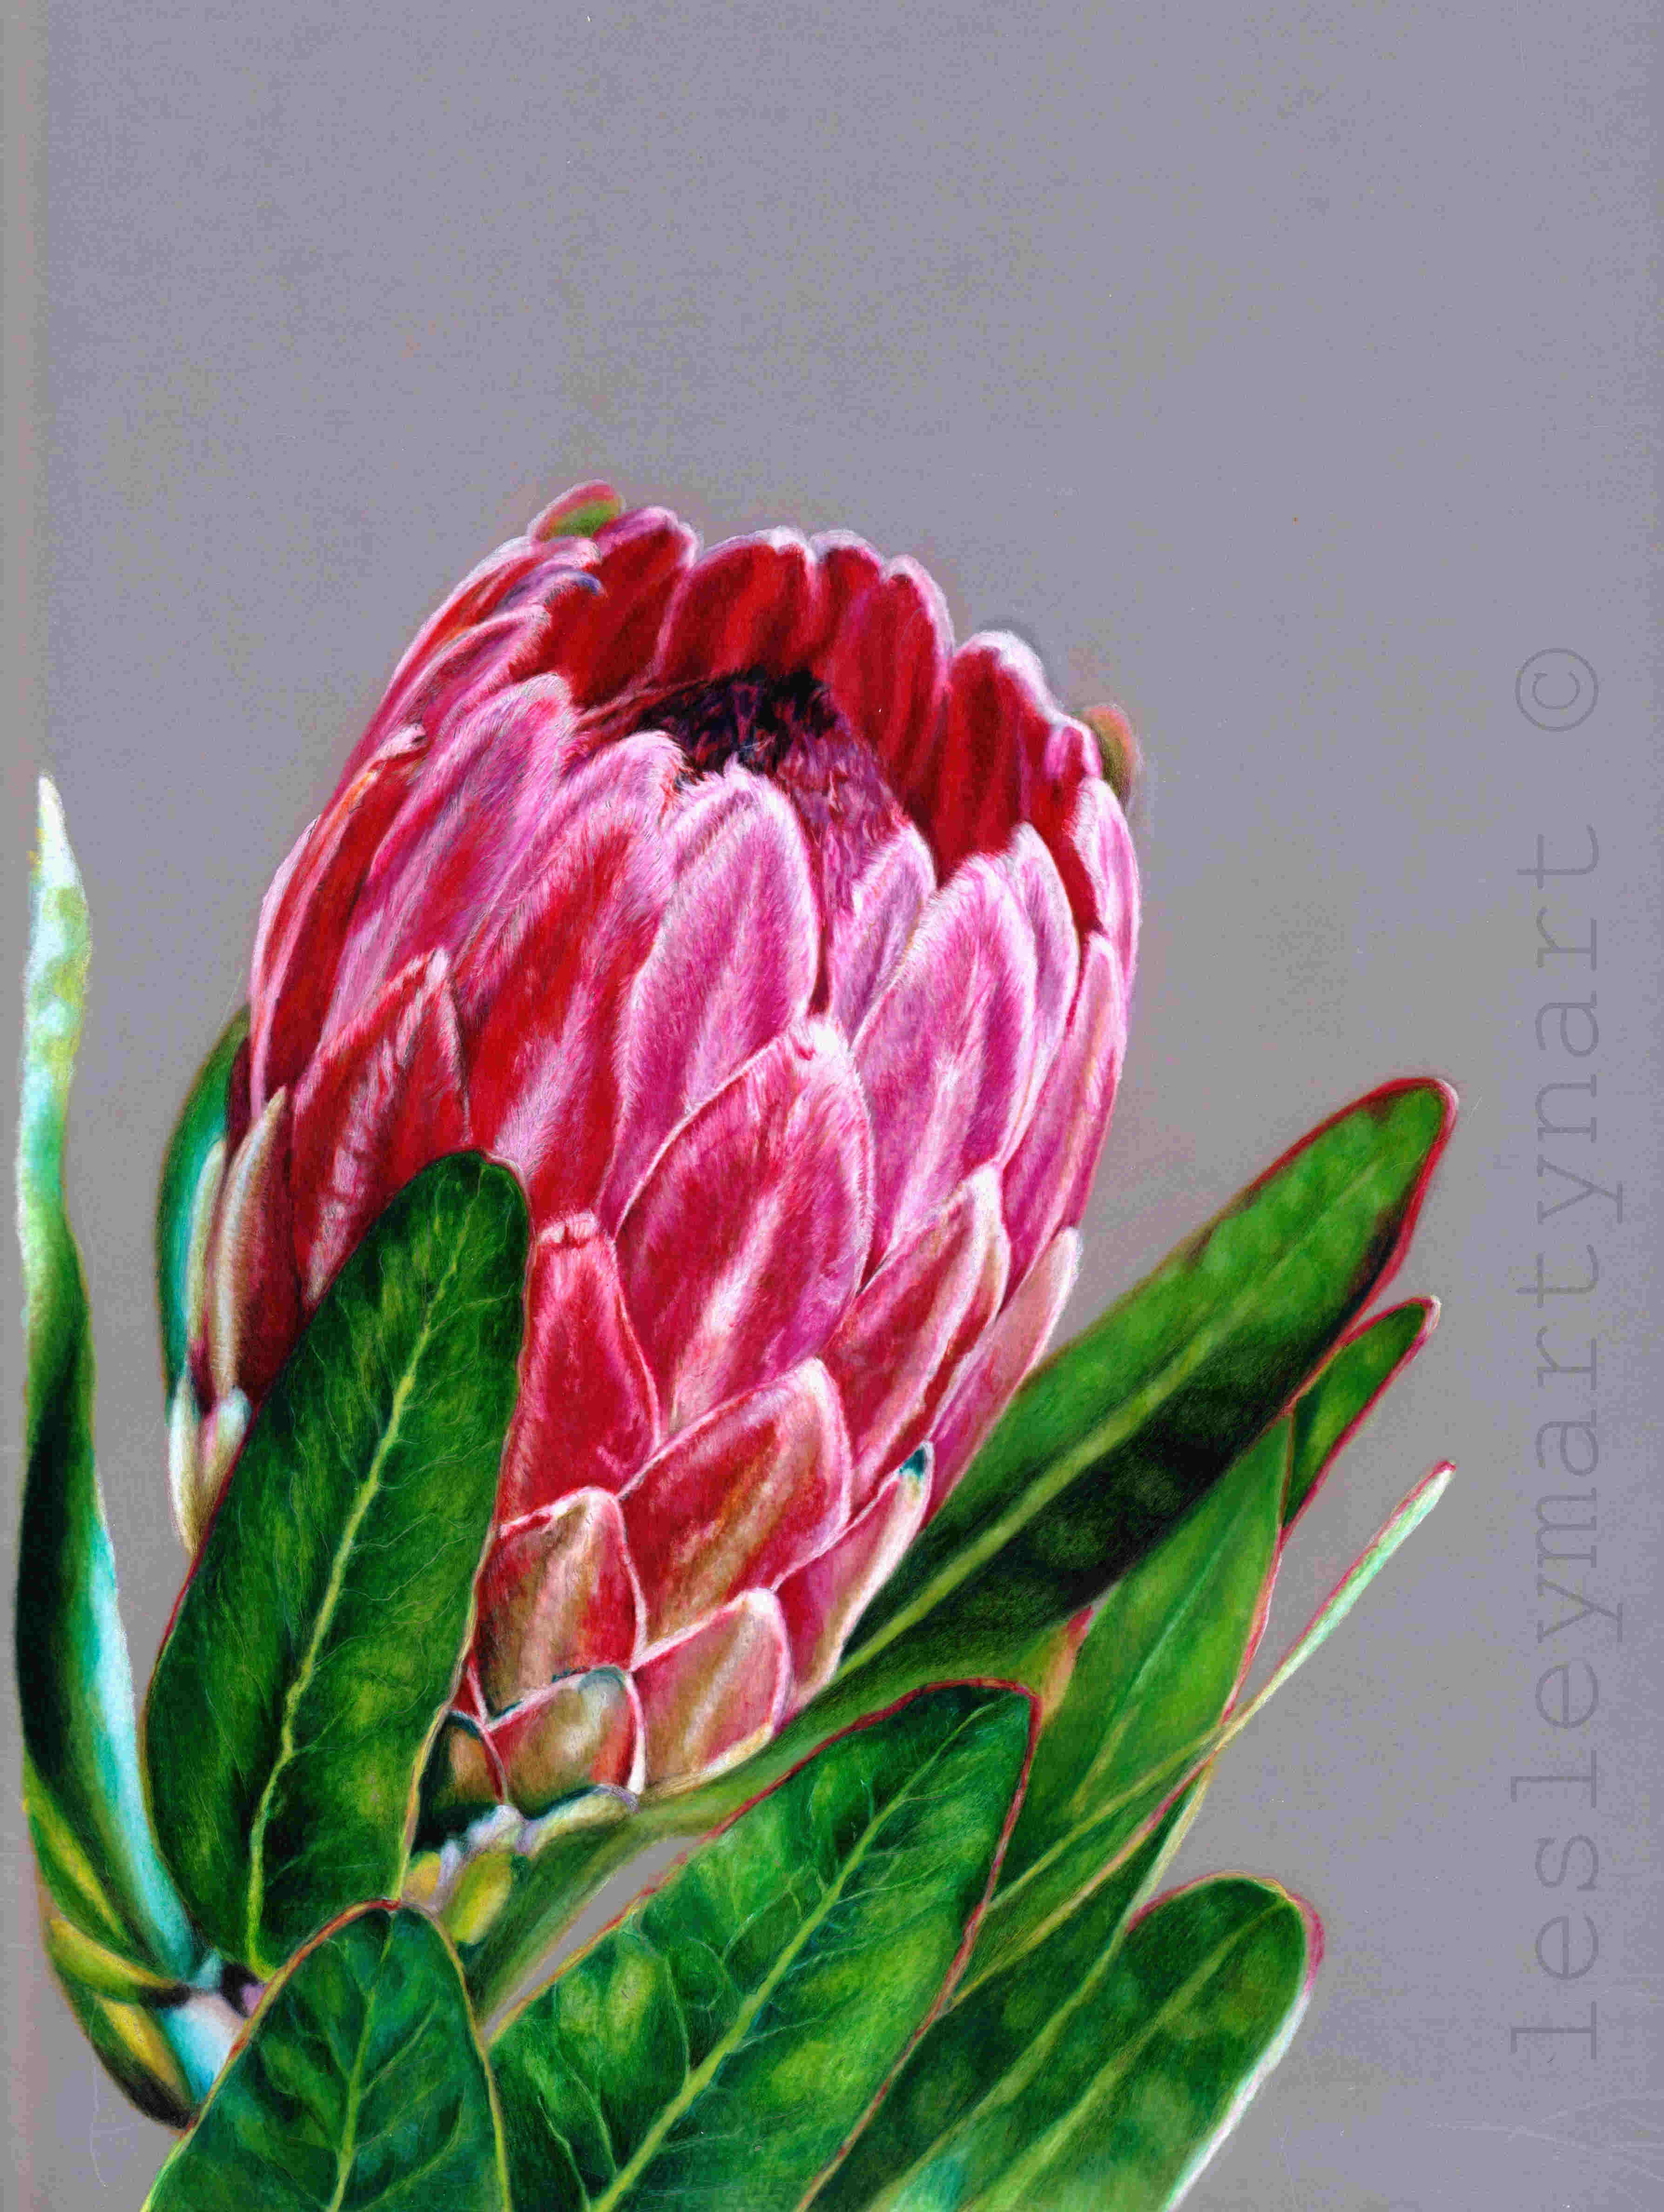 Interview: Lesley Martyn Protea_-_FC_Polychromos,_CD_Pablos_and_Luminance_on_A4_Drafting_Film_with_black_backing_-_reference_Pixabay